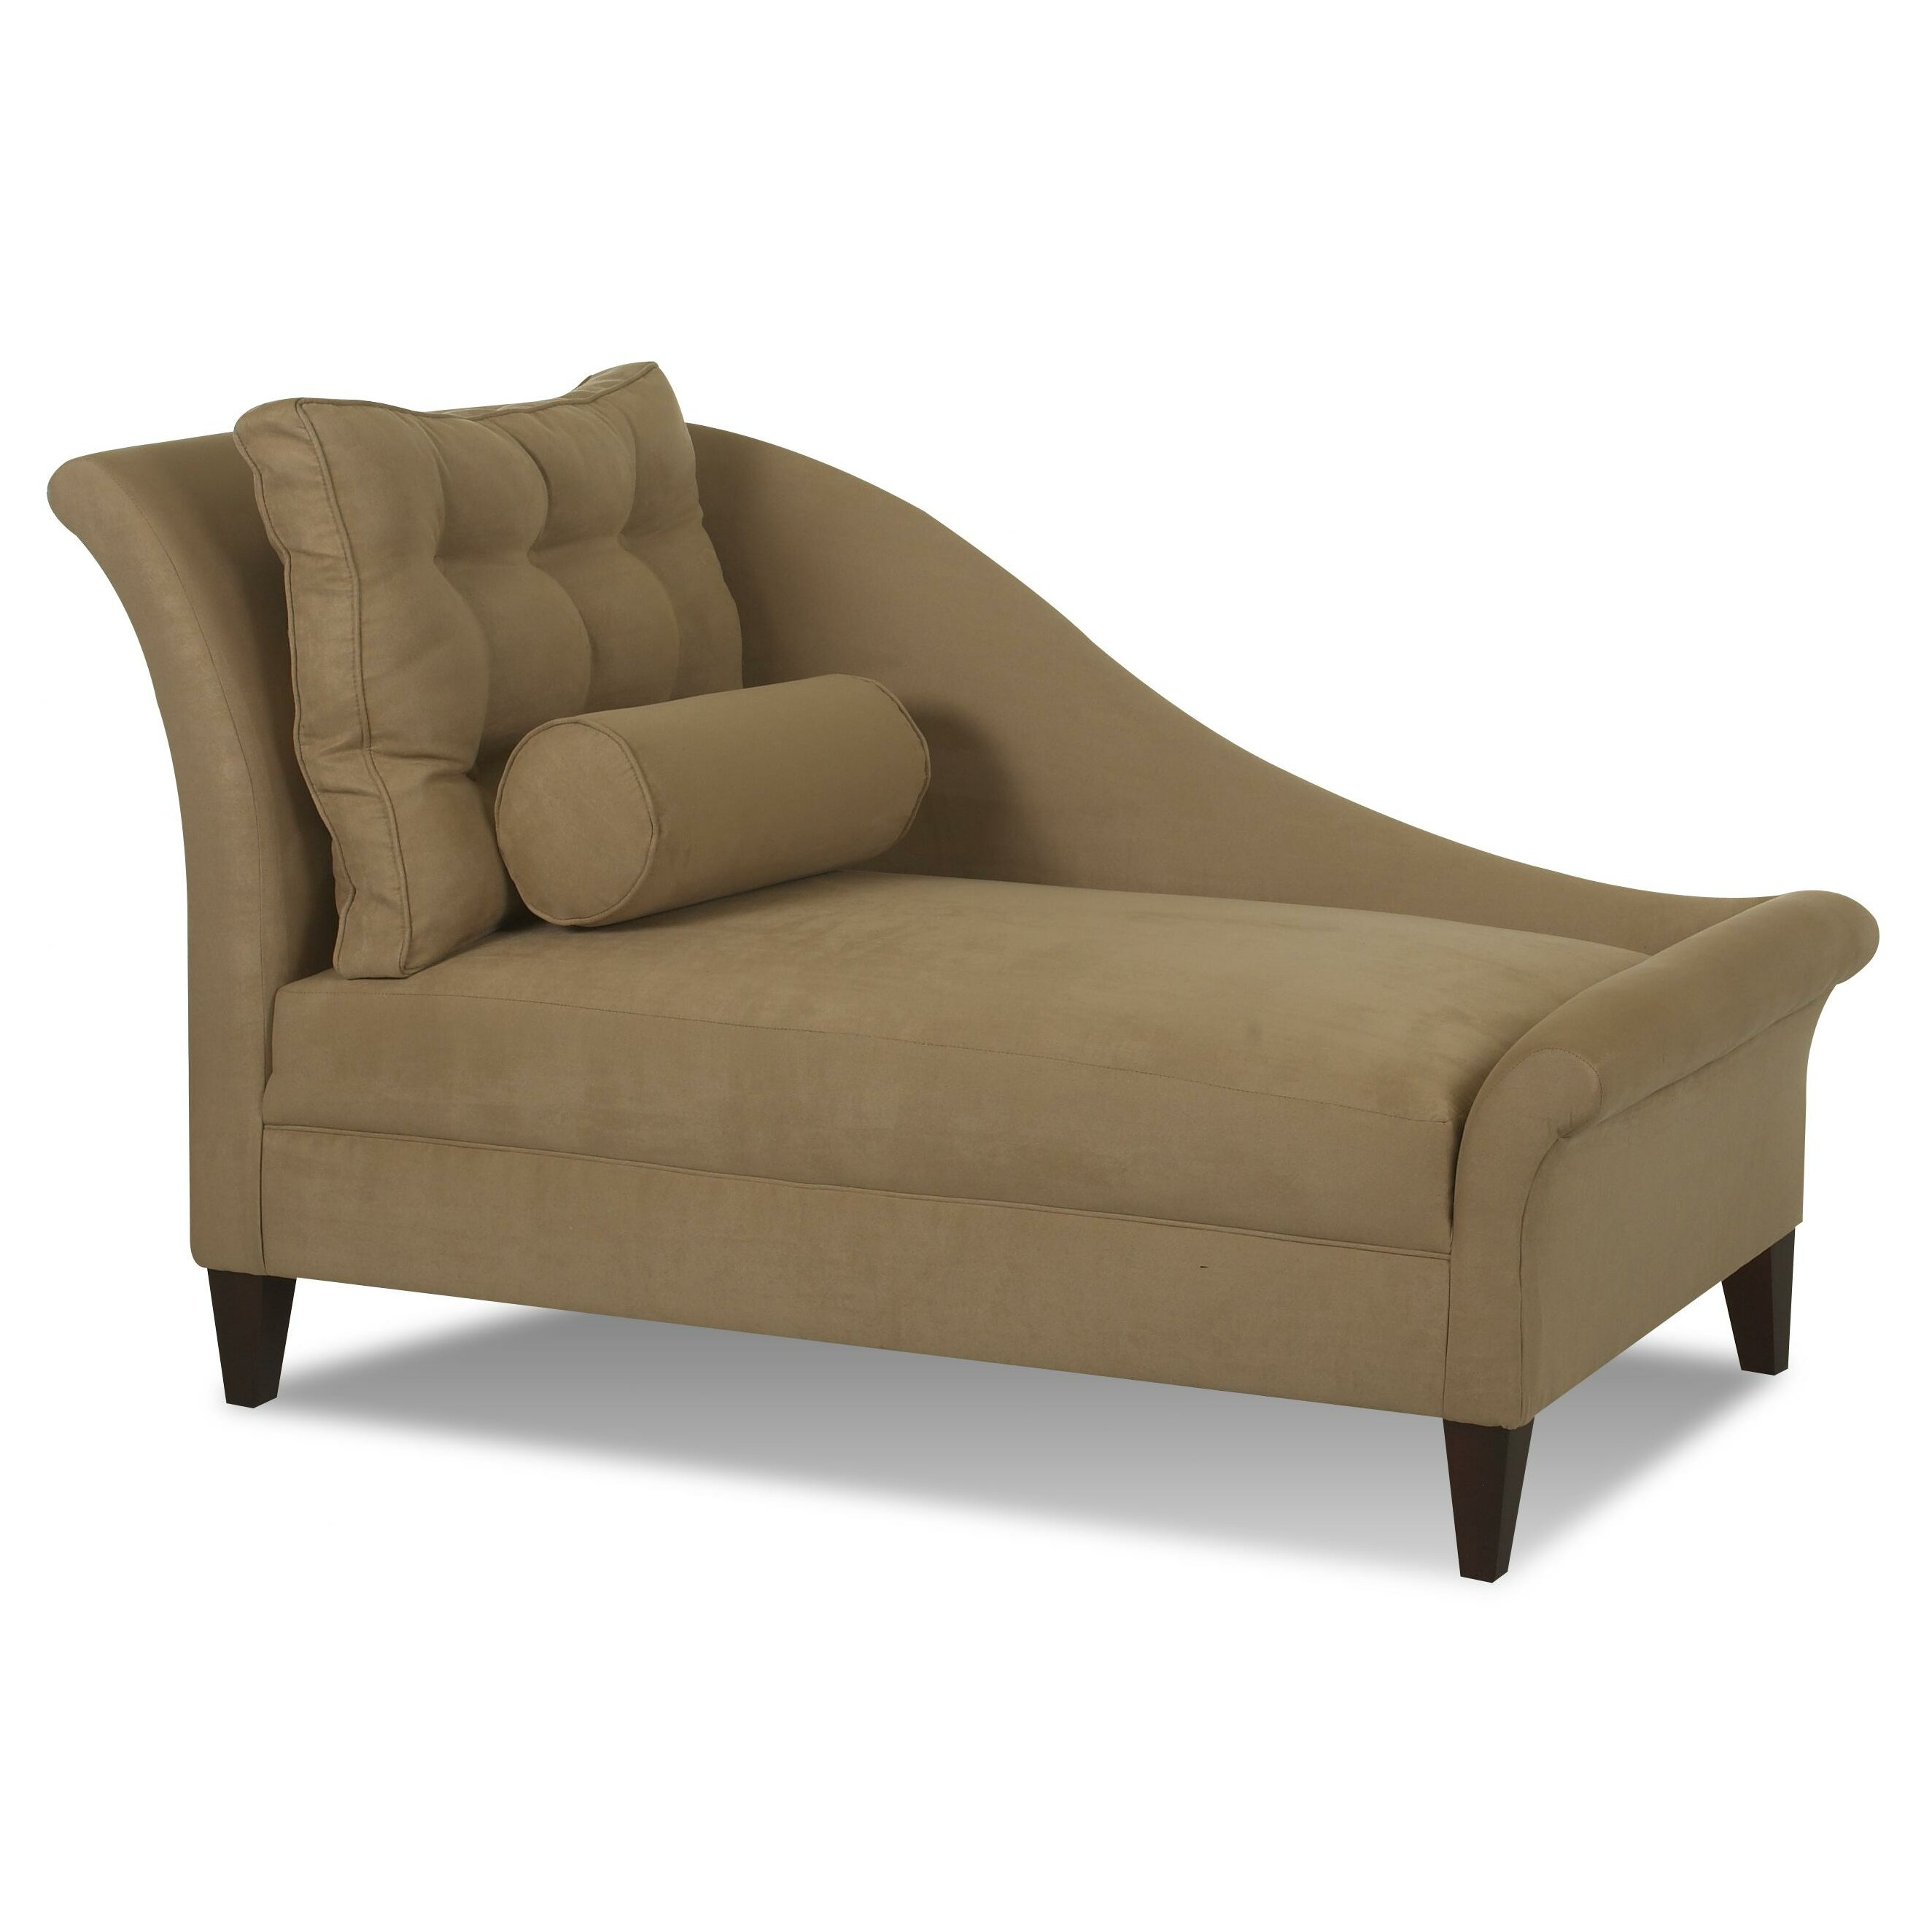 Klaussner furniture park right arm facing chaise lounge for Armed chaise lounge